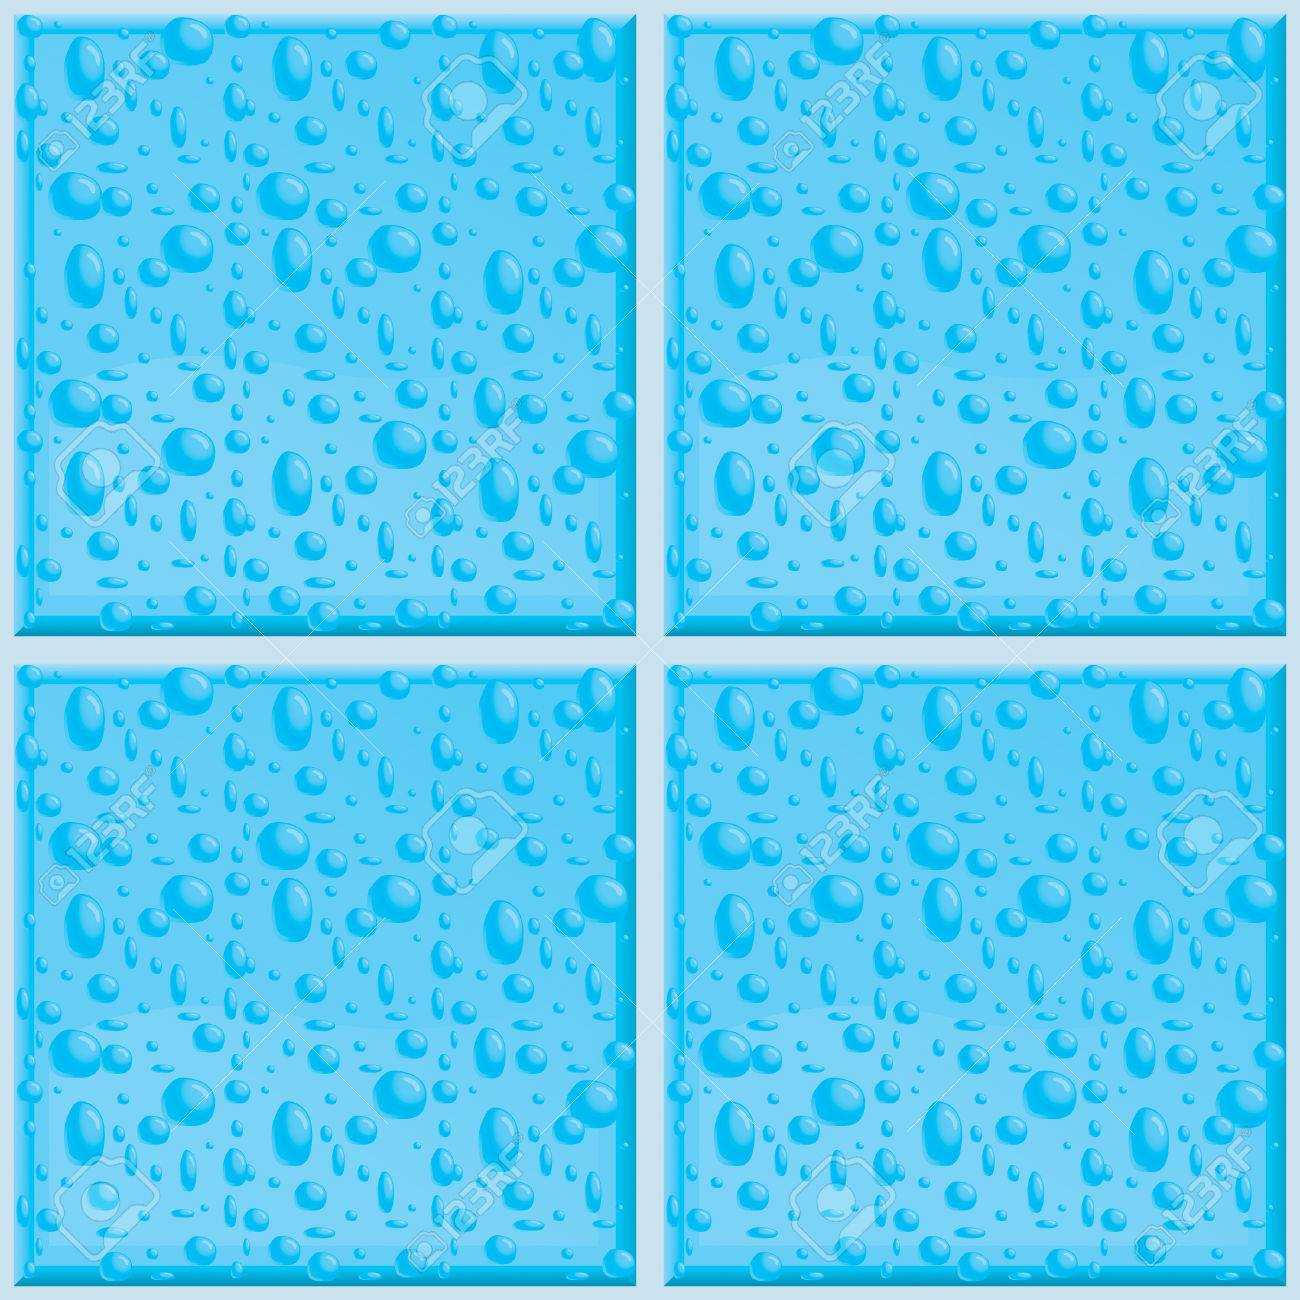 A Seamless And Repeating Bathroom Tile Pattern. Royalty Free ...